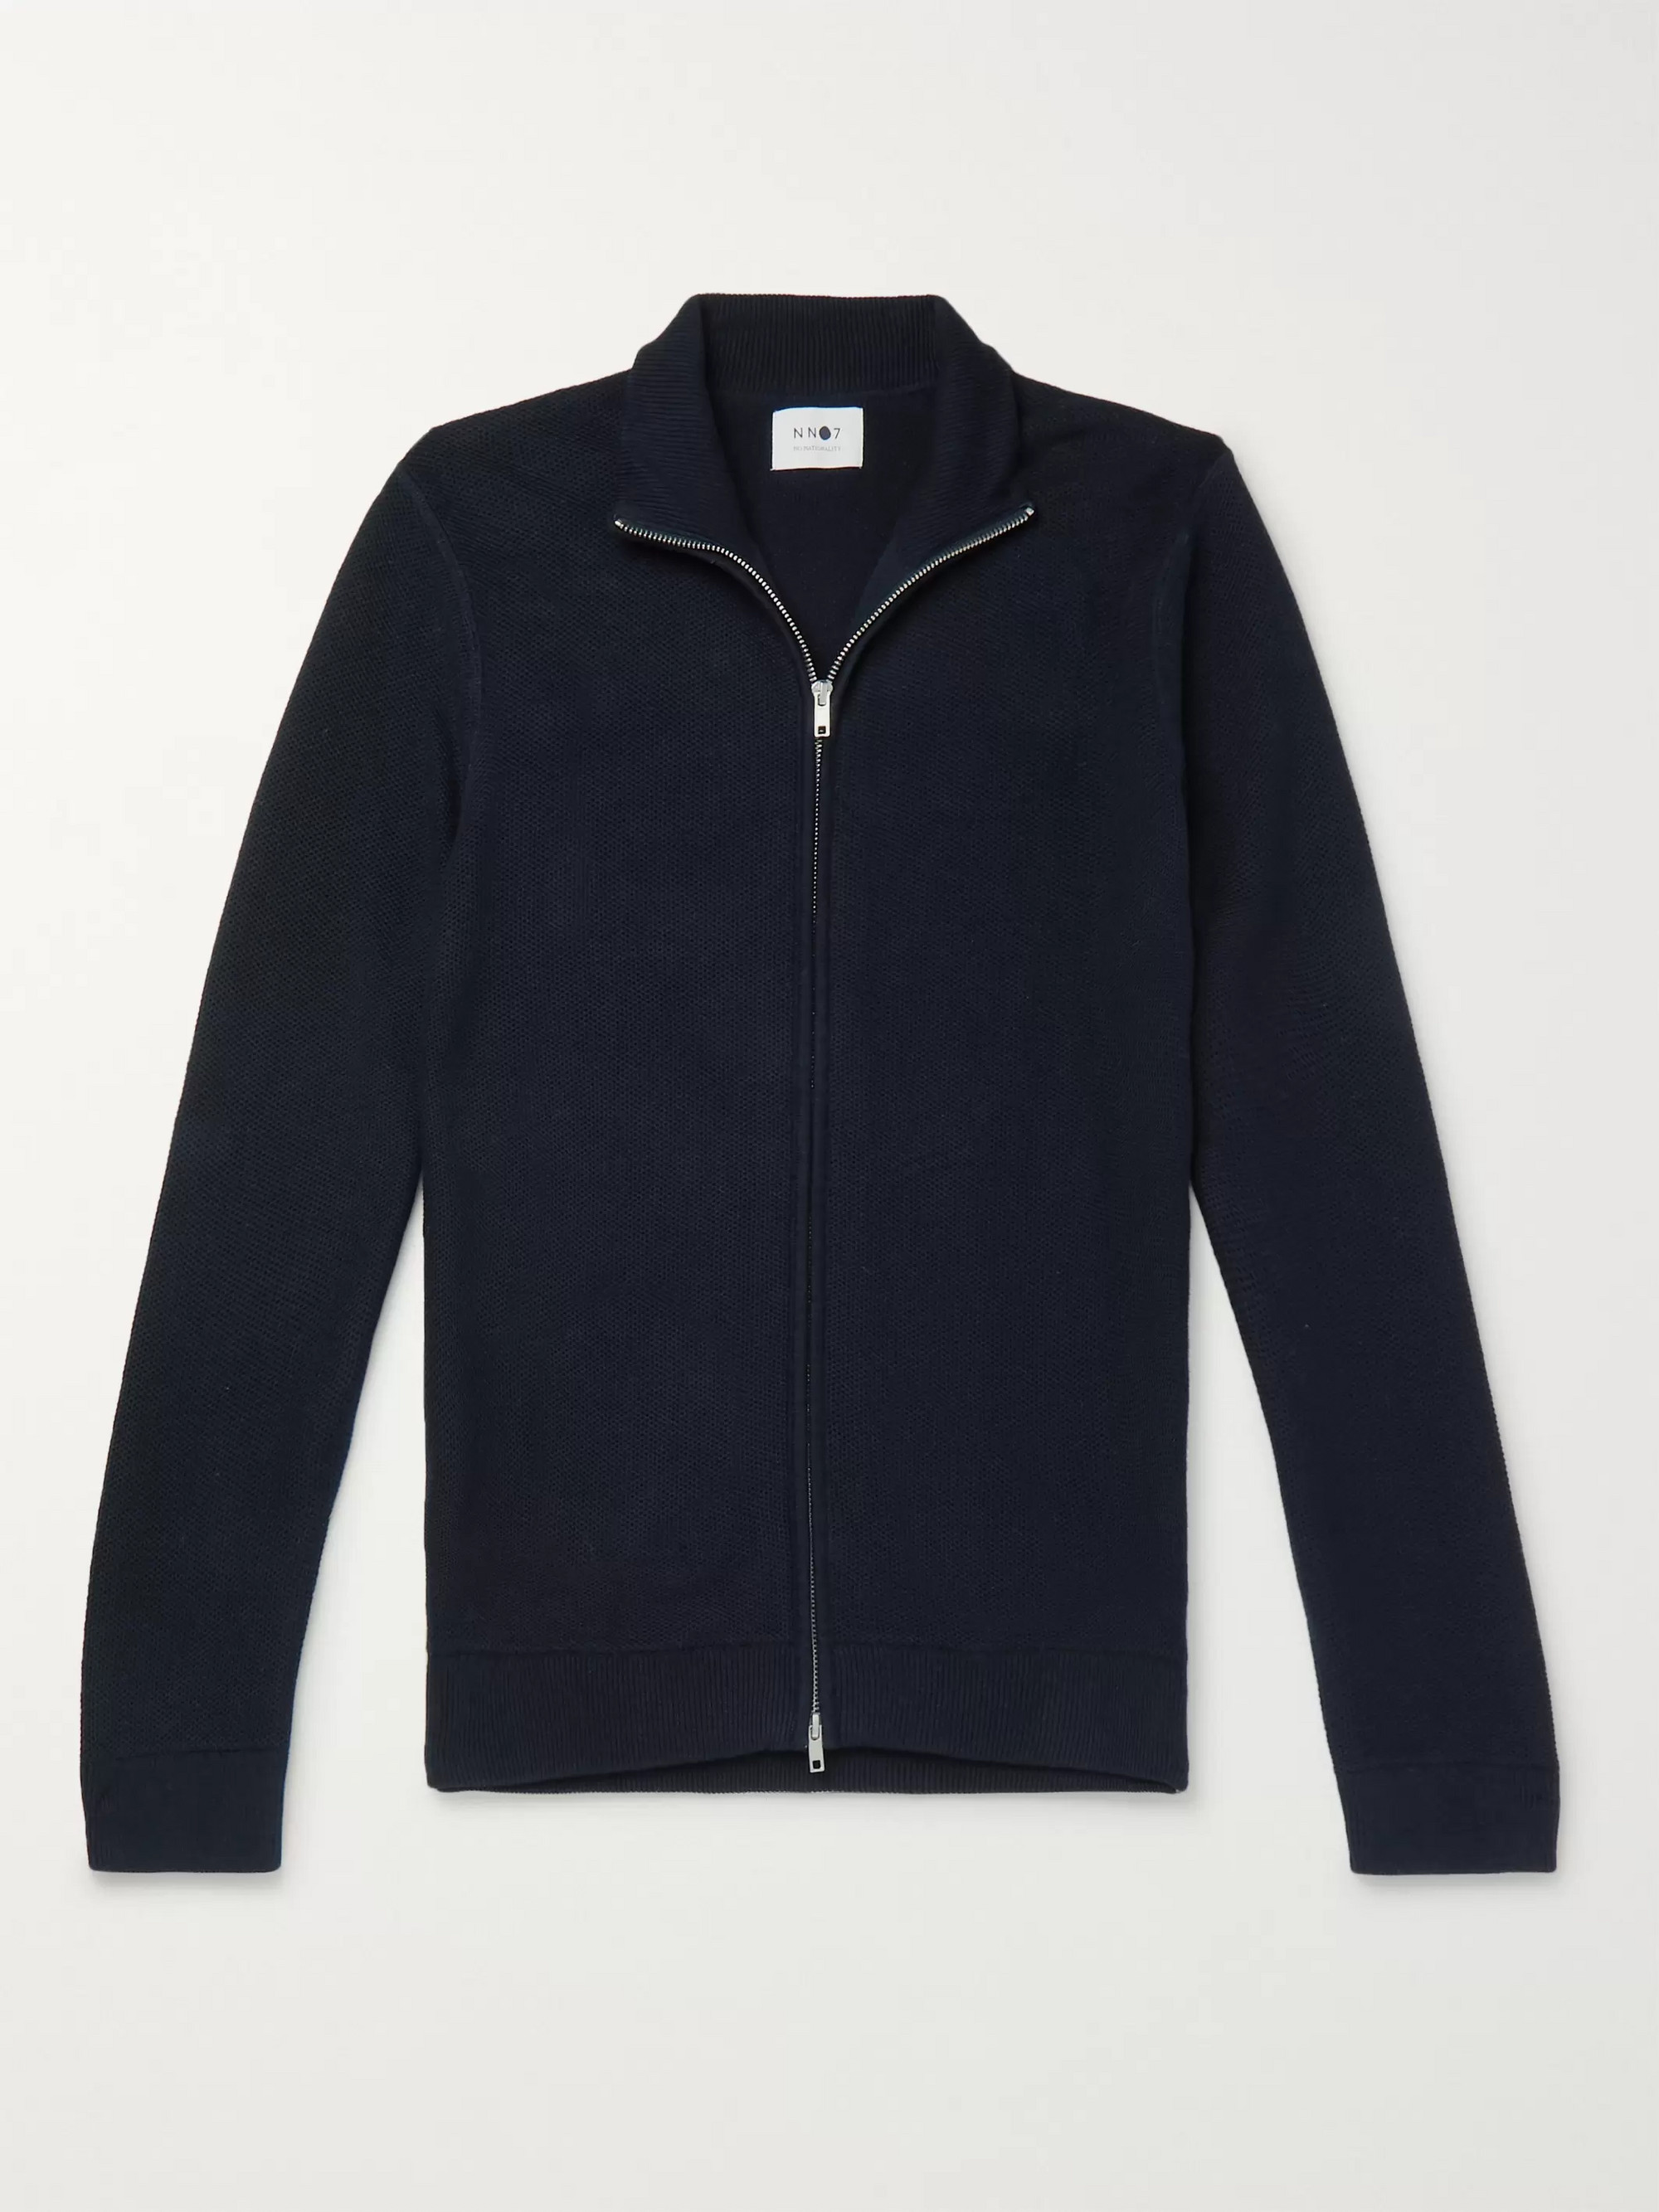 NN07 Patrick Honeycomb-Knit Cotton Zip-Up Cardigan